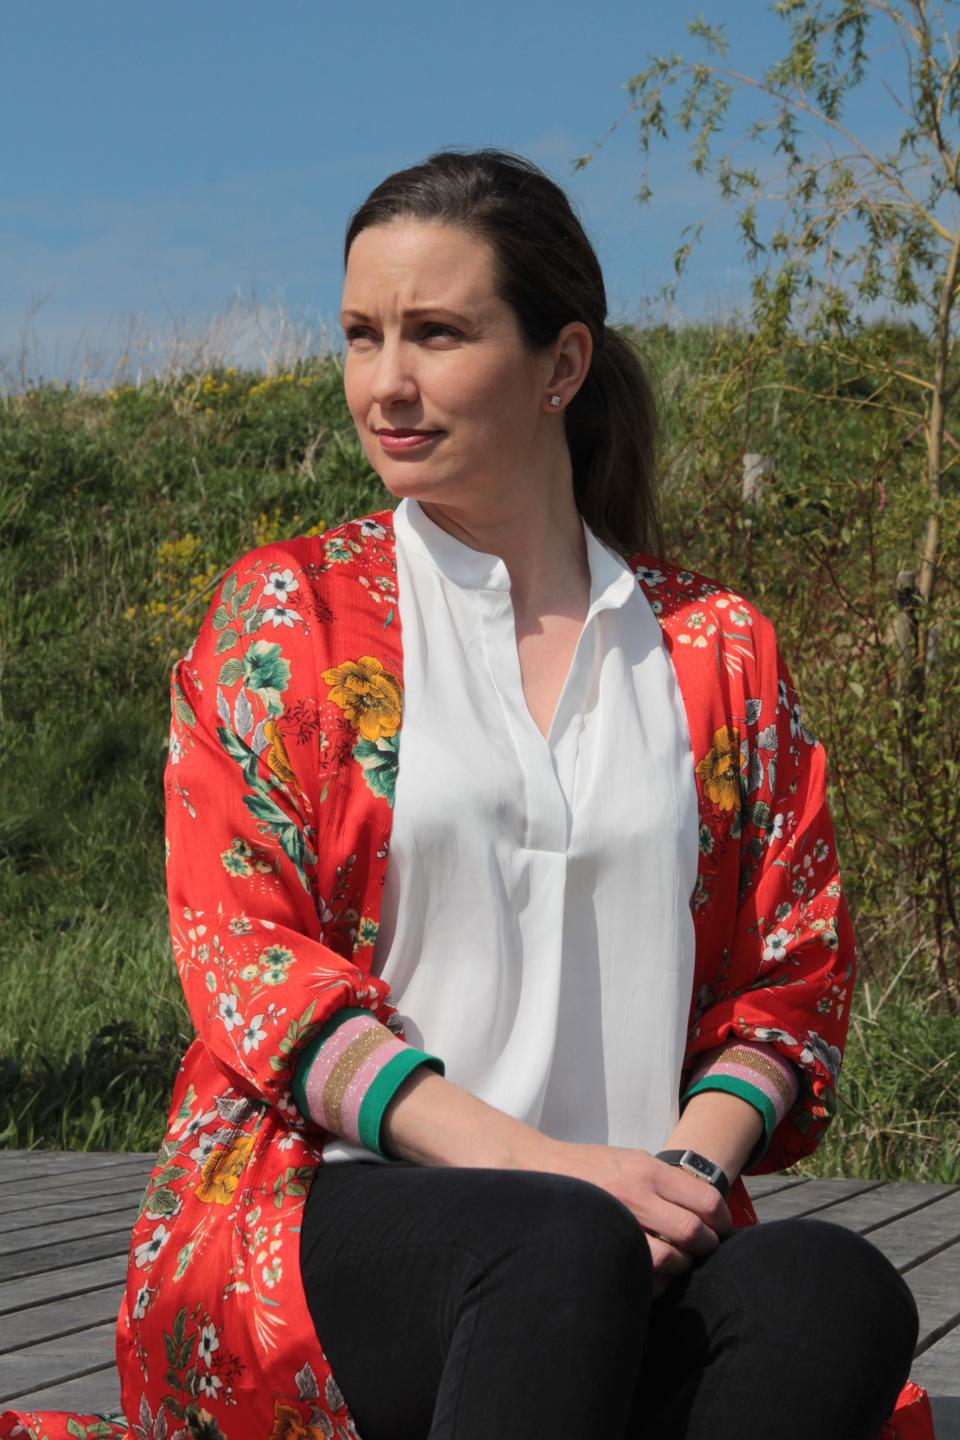 Woman sitting in red and white shirts, with grass in background